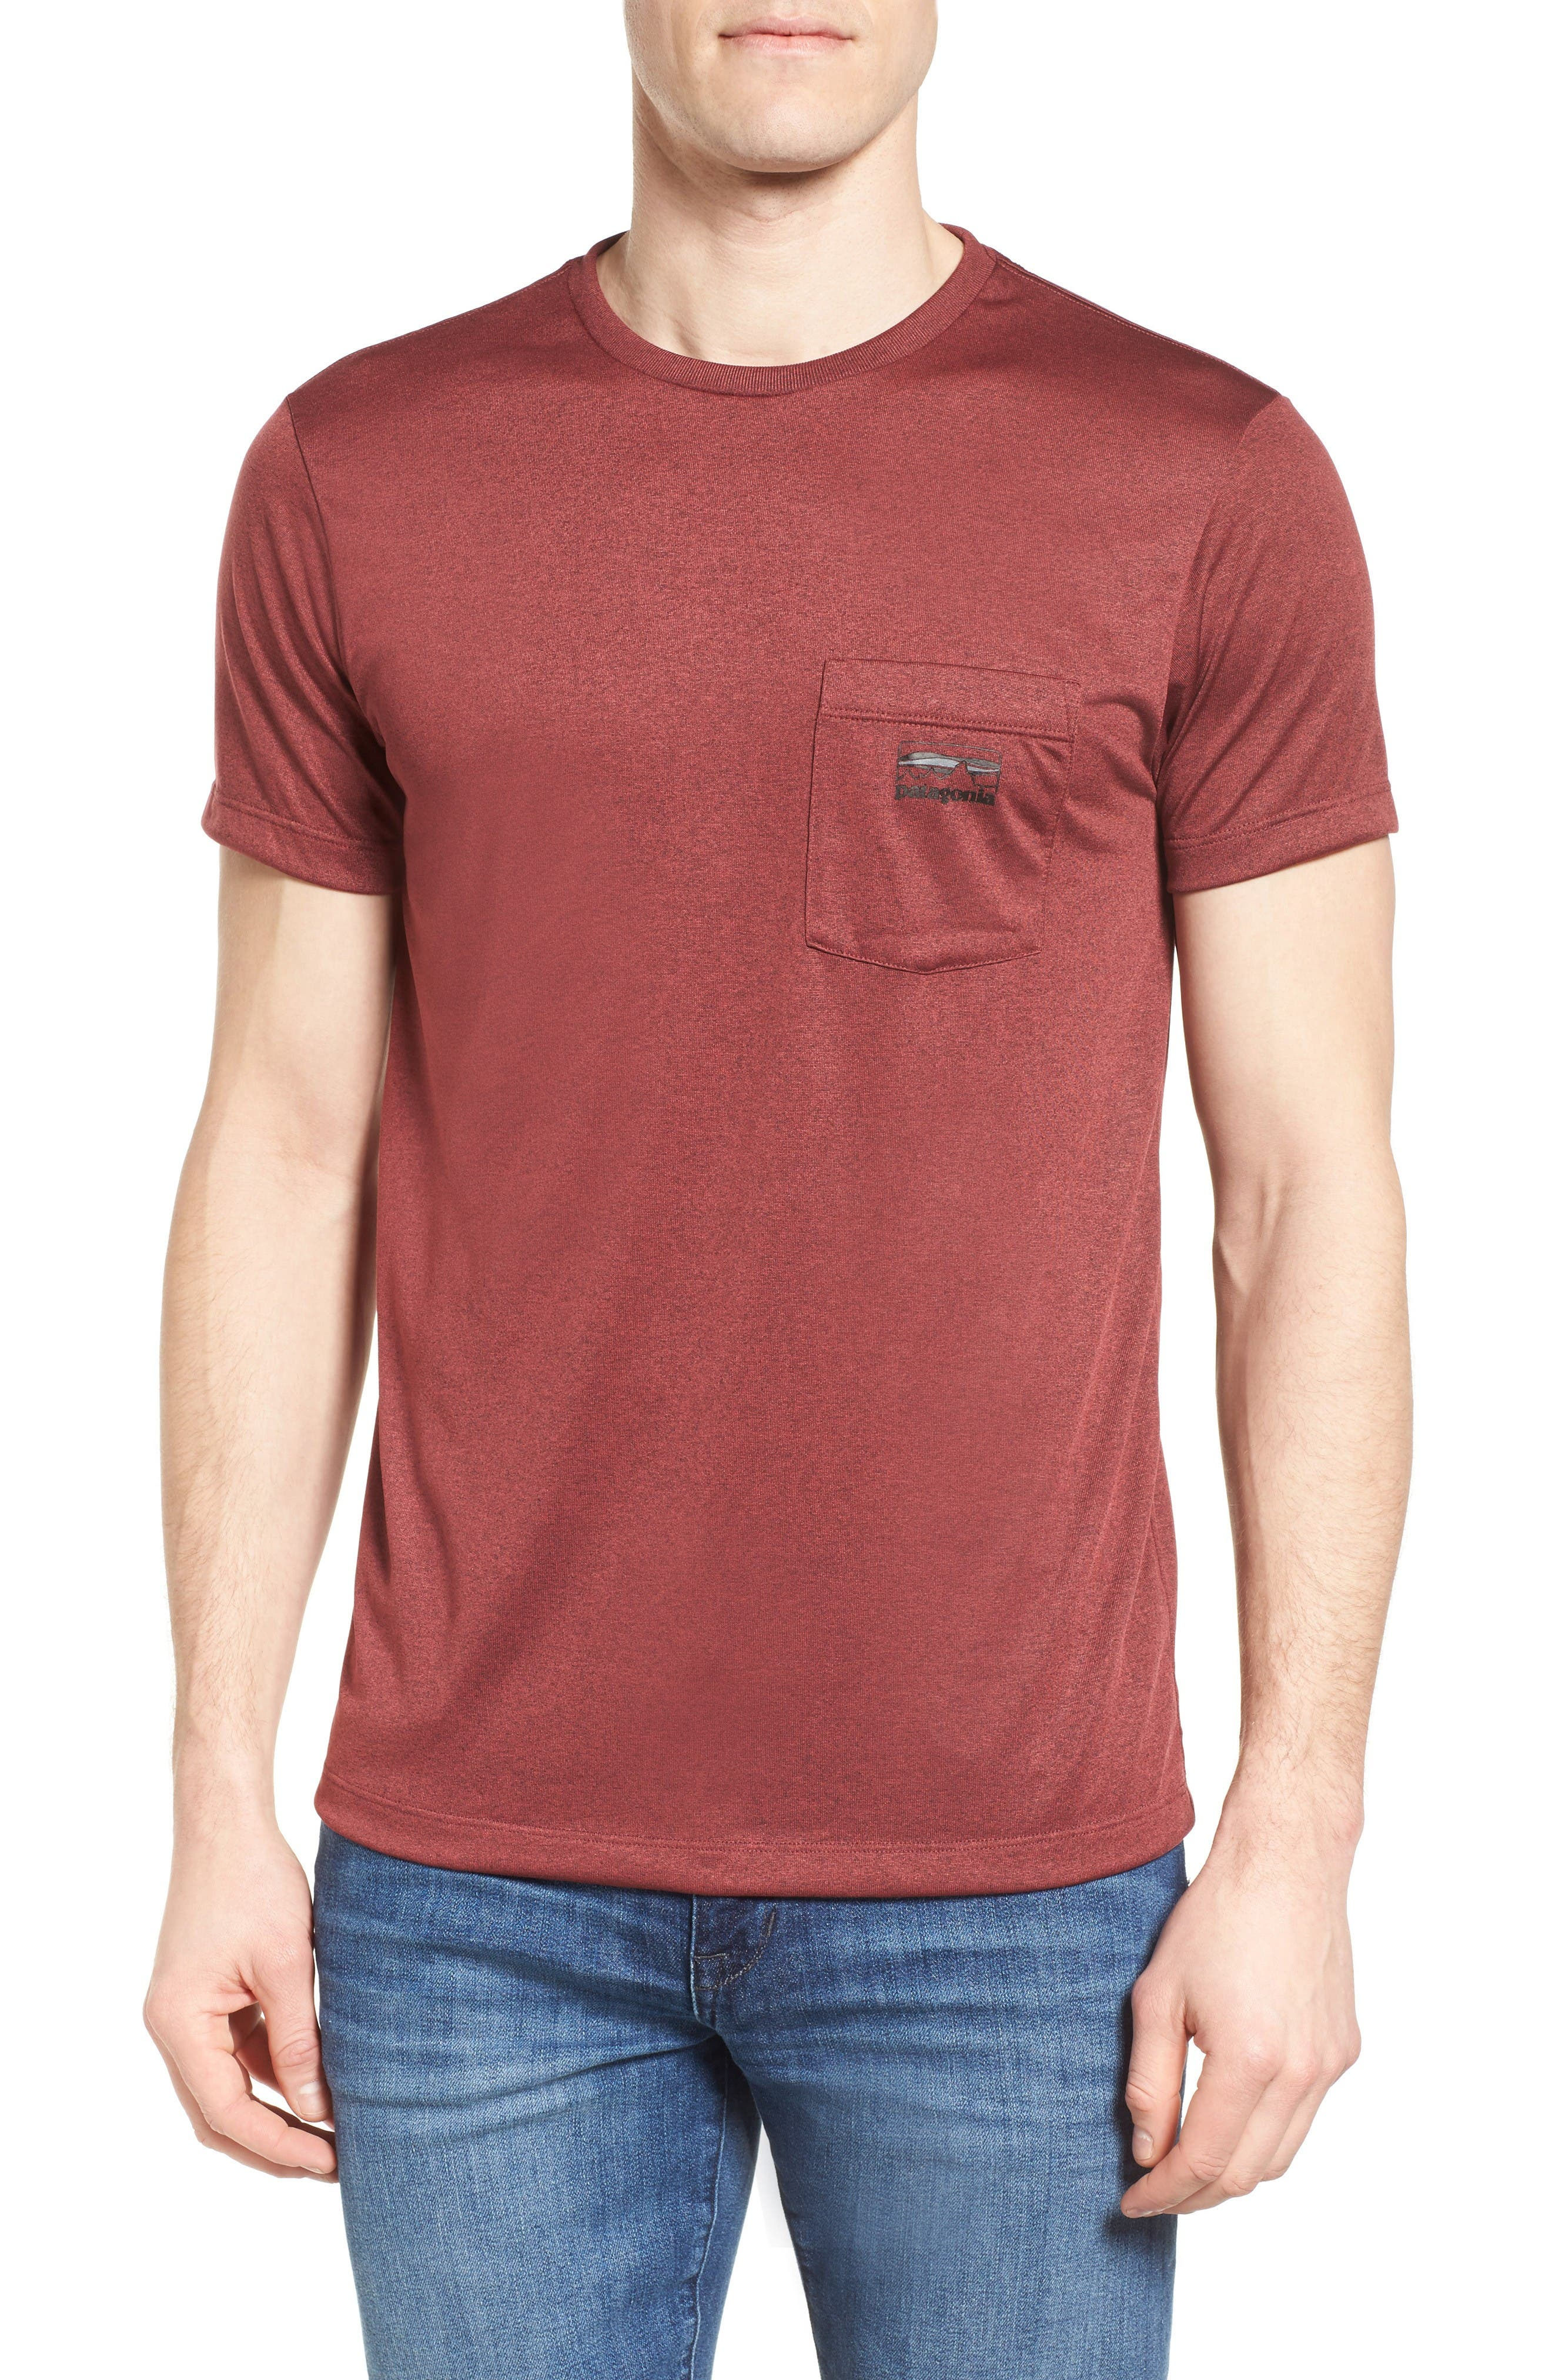 Patagonia '73 Logo Slim Fit T-Shirt